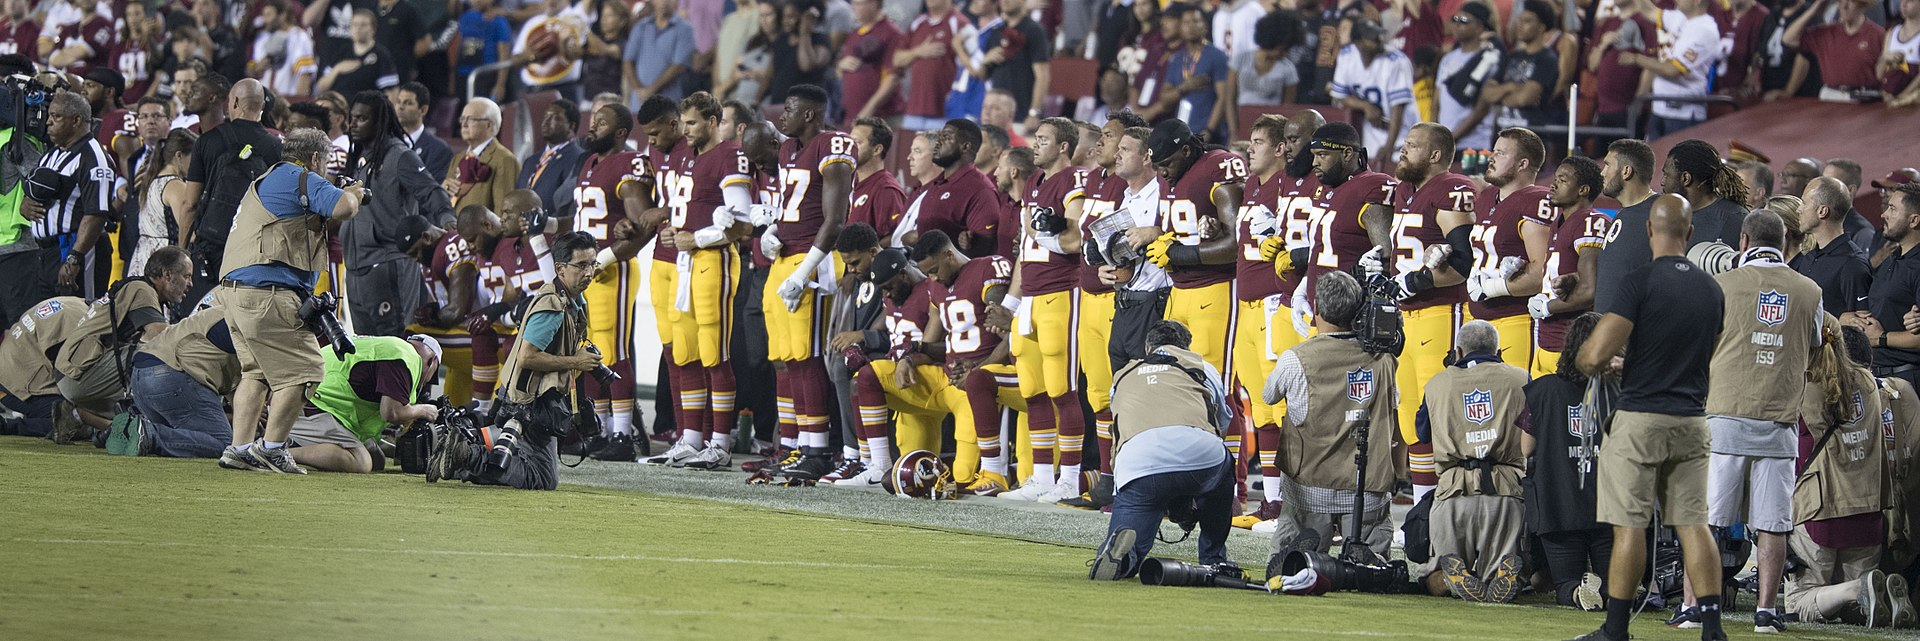 NFL players kneel in protest